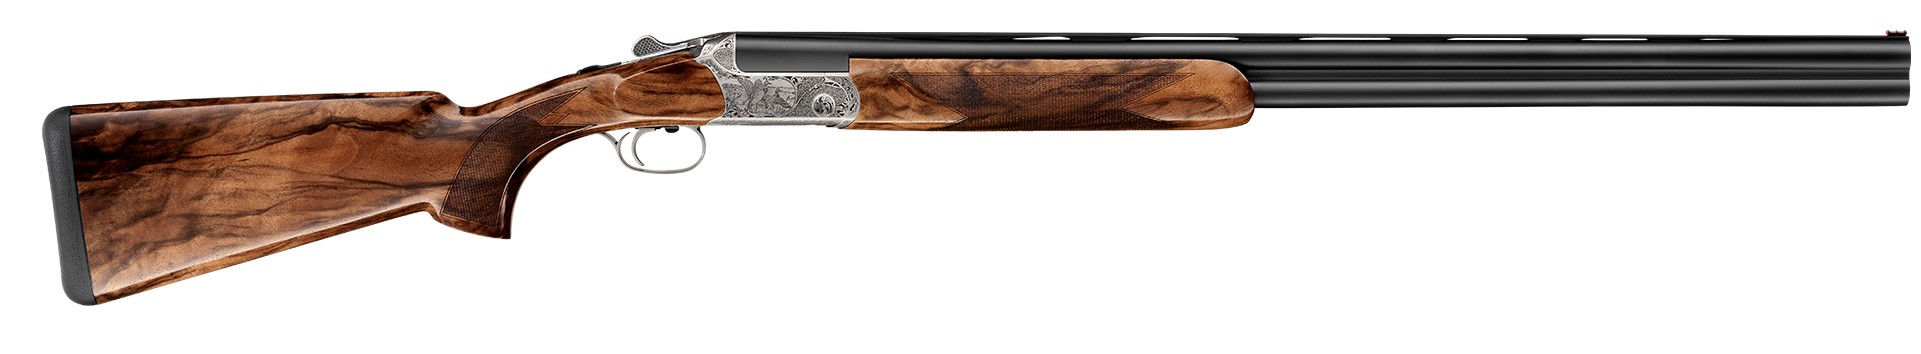 Blaser F16 Sporting Grand Luxe